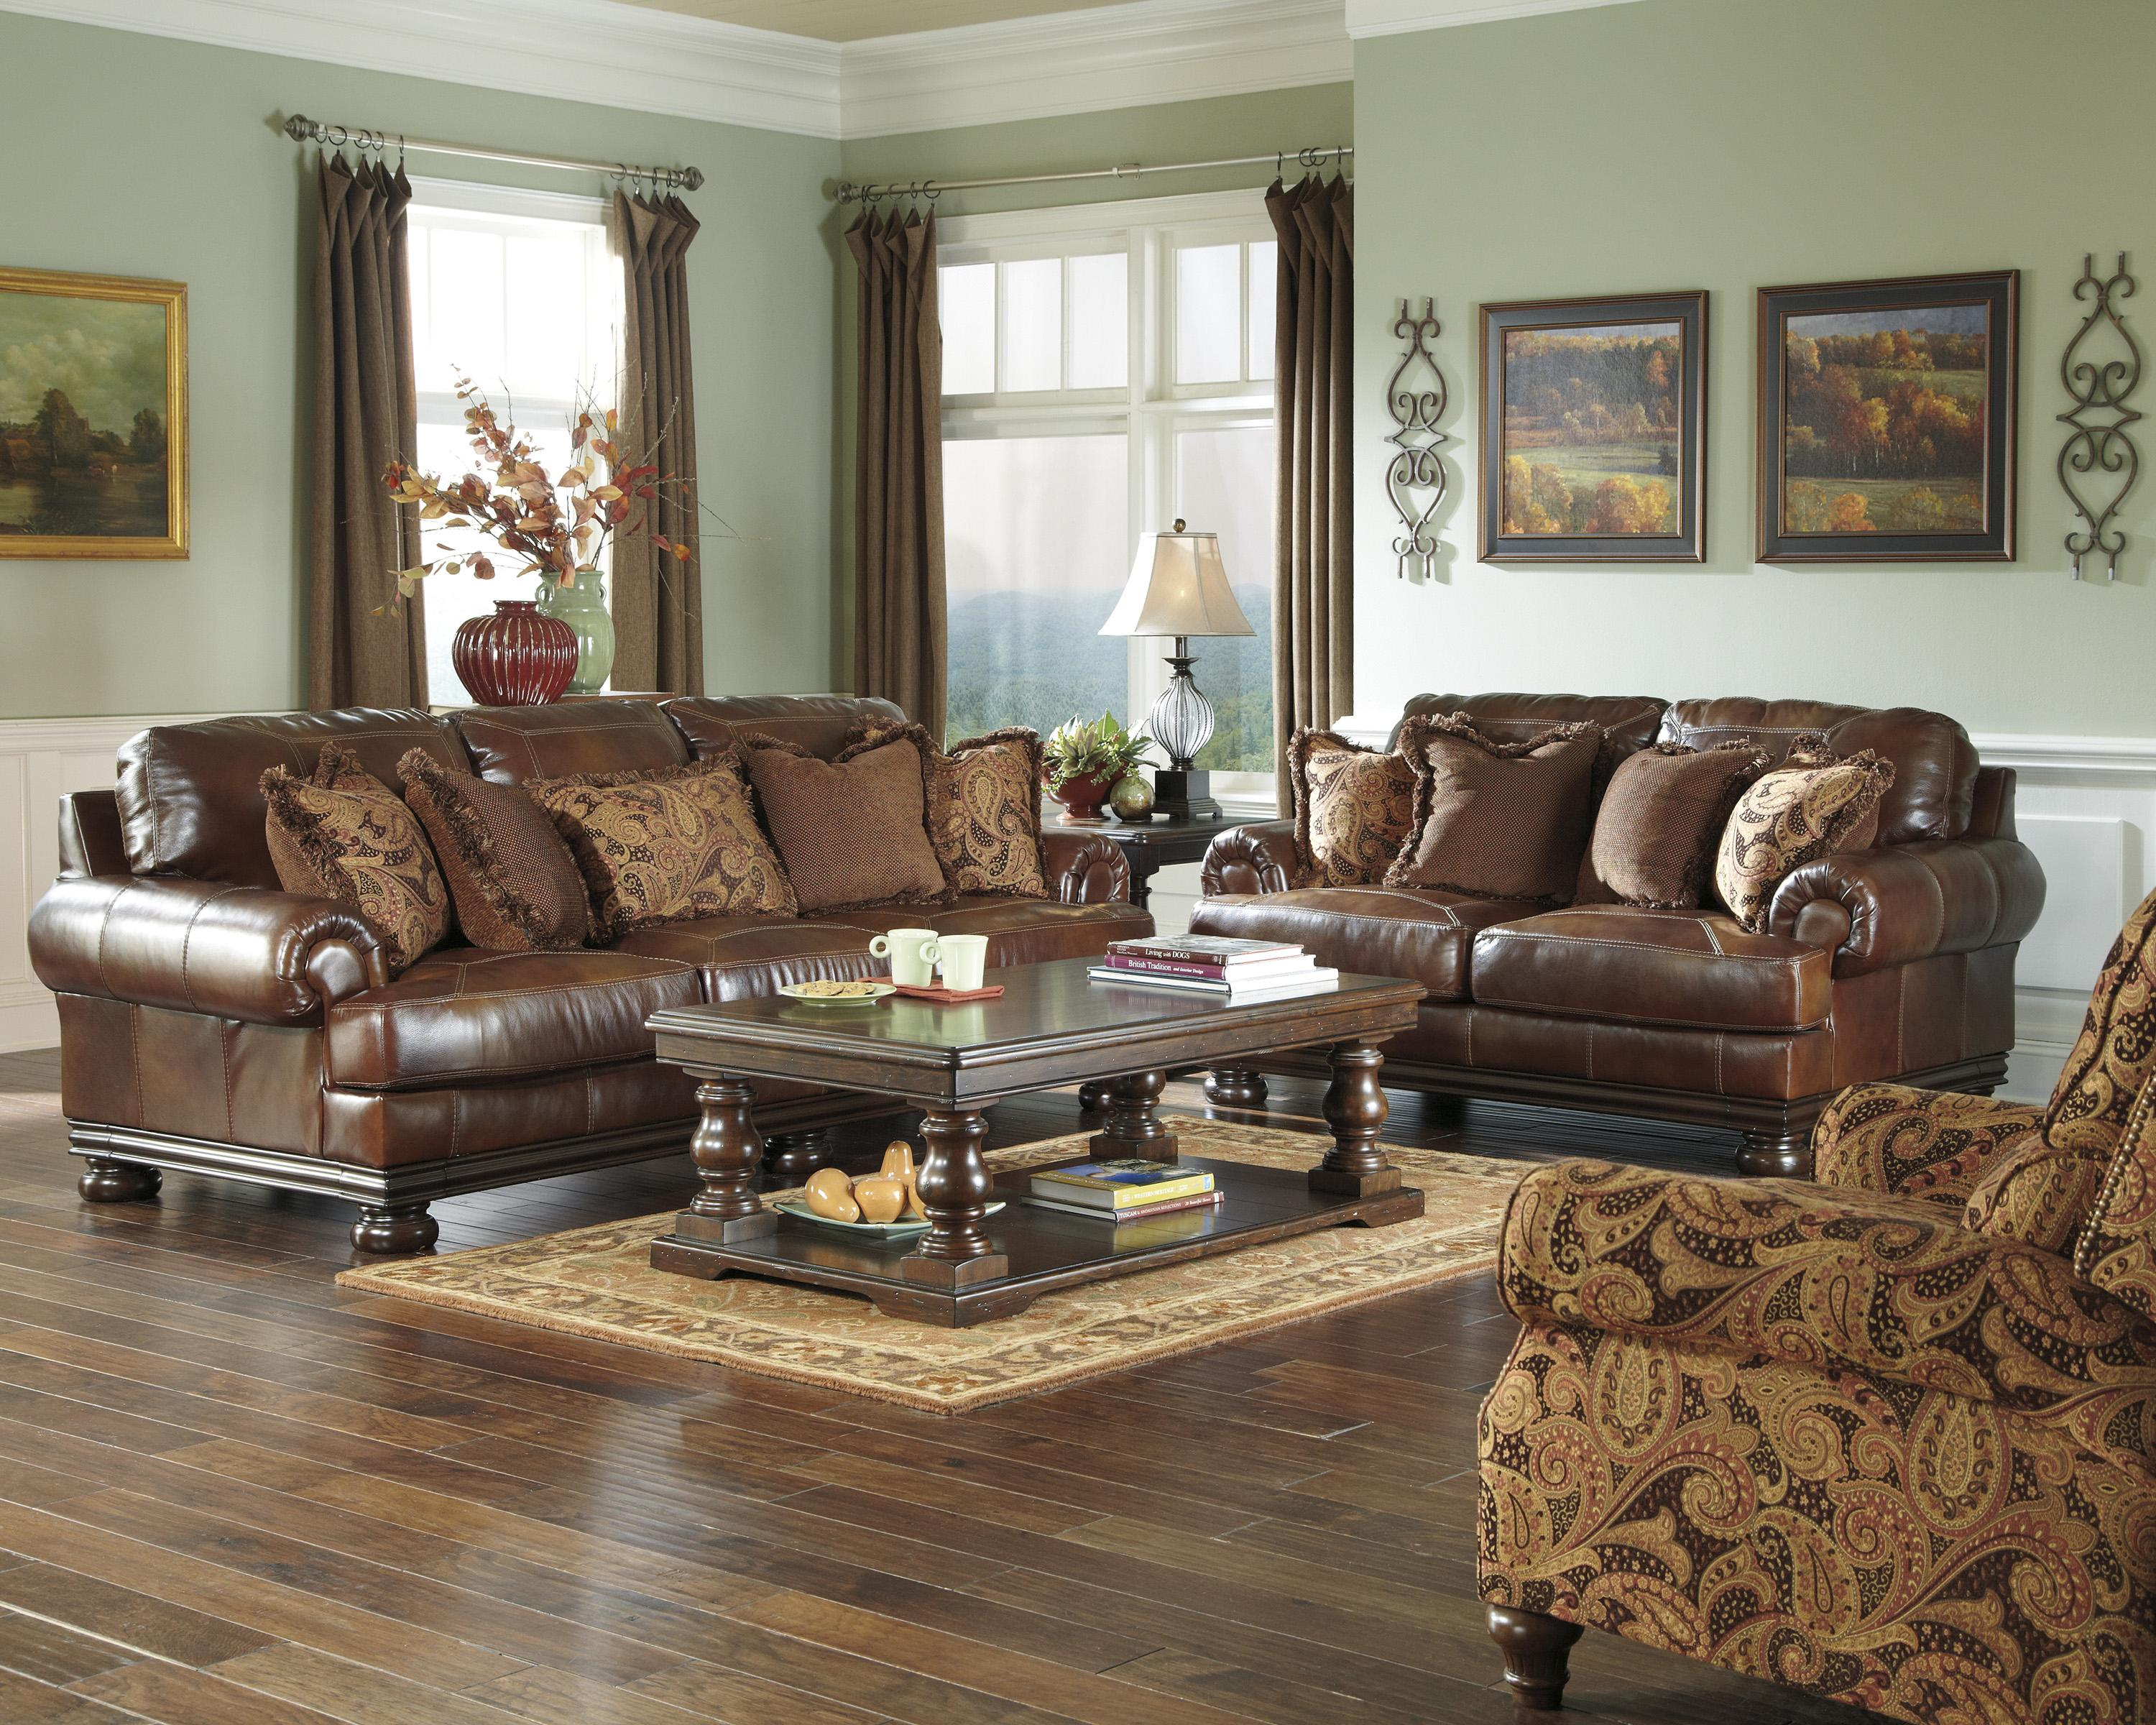 Signature Design by Ashley Hutcherson Stationary Living Room Group - Item Number: 211 Living Room Group 3